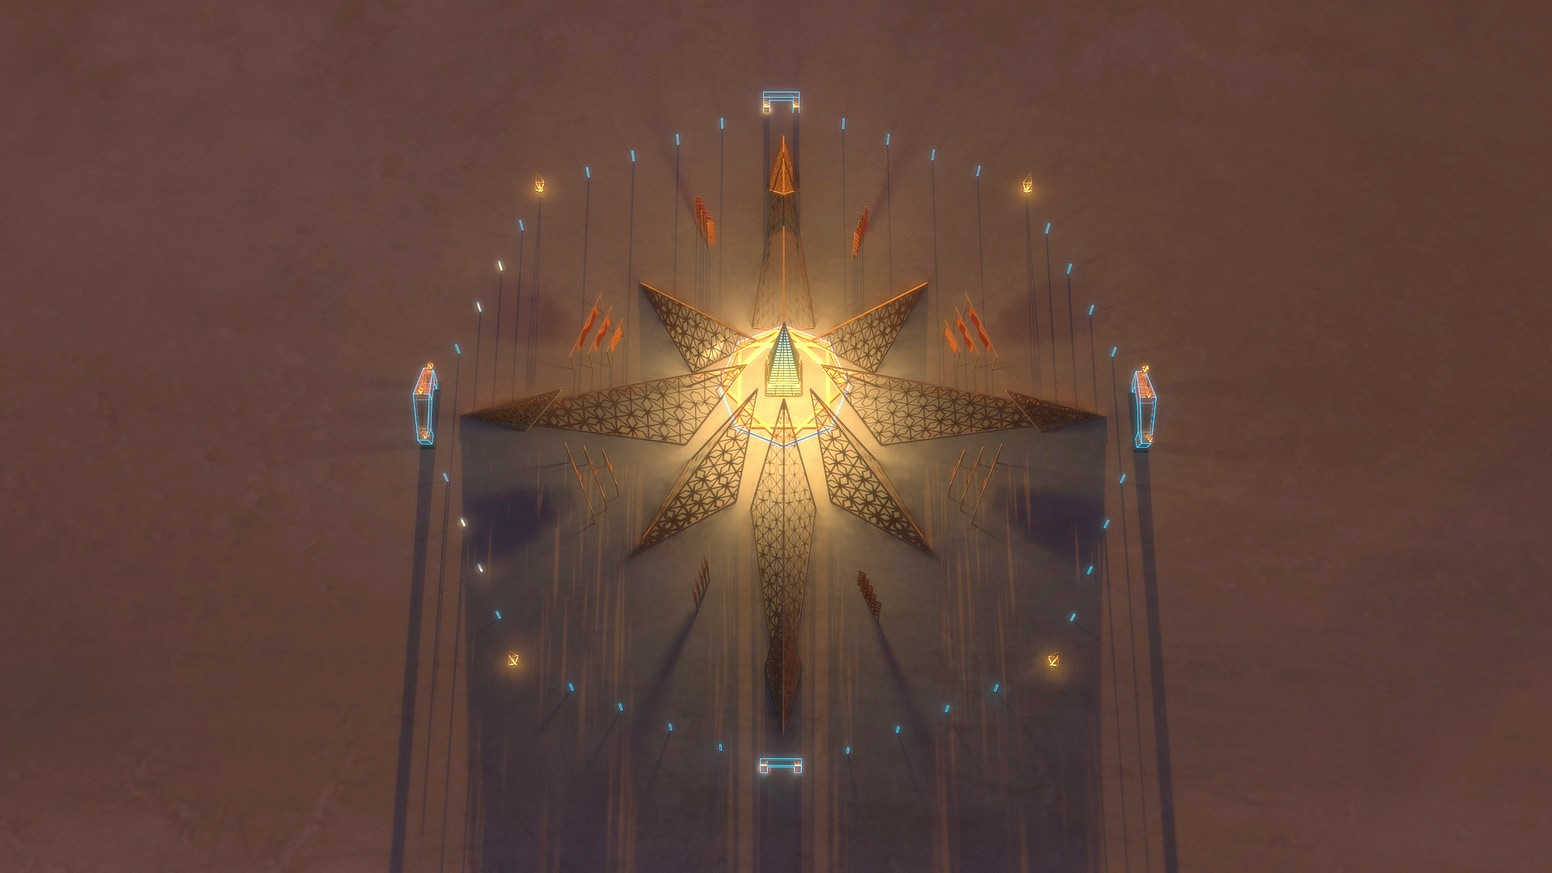 Empyrean is your Burning Man Temple of 2020. Please support and share so we can build this temple for you and everyone who needs it! If you missed our project, but still would like to make a pledge, please send us a message or visit our website!